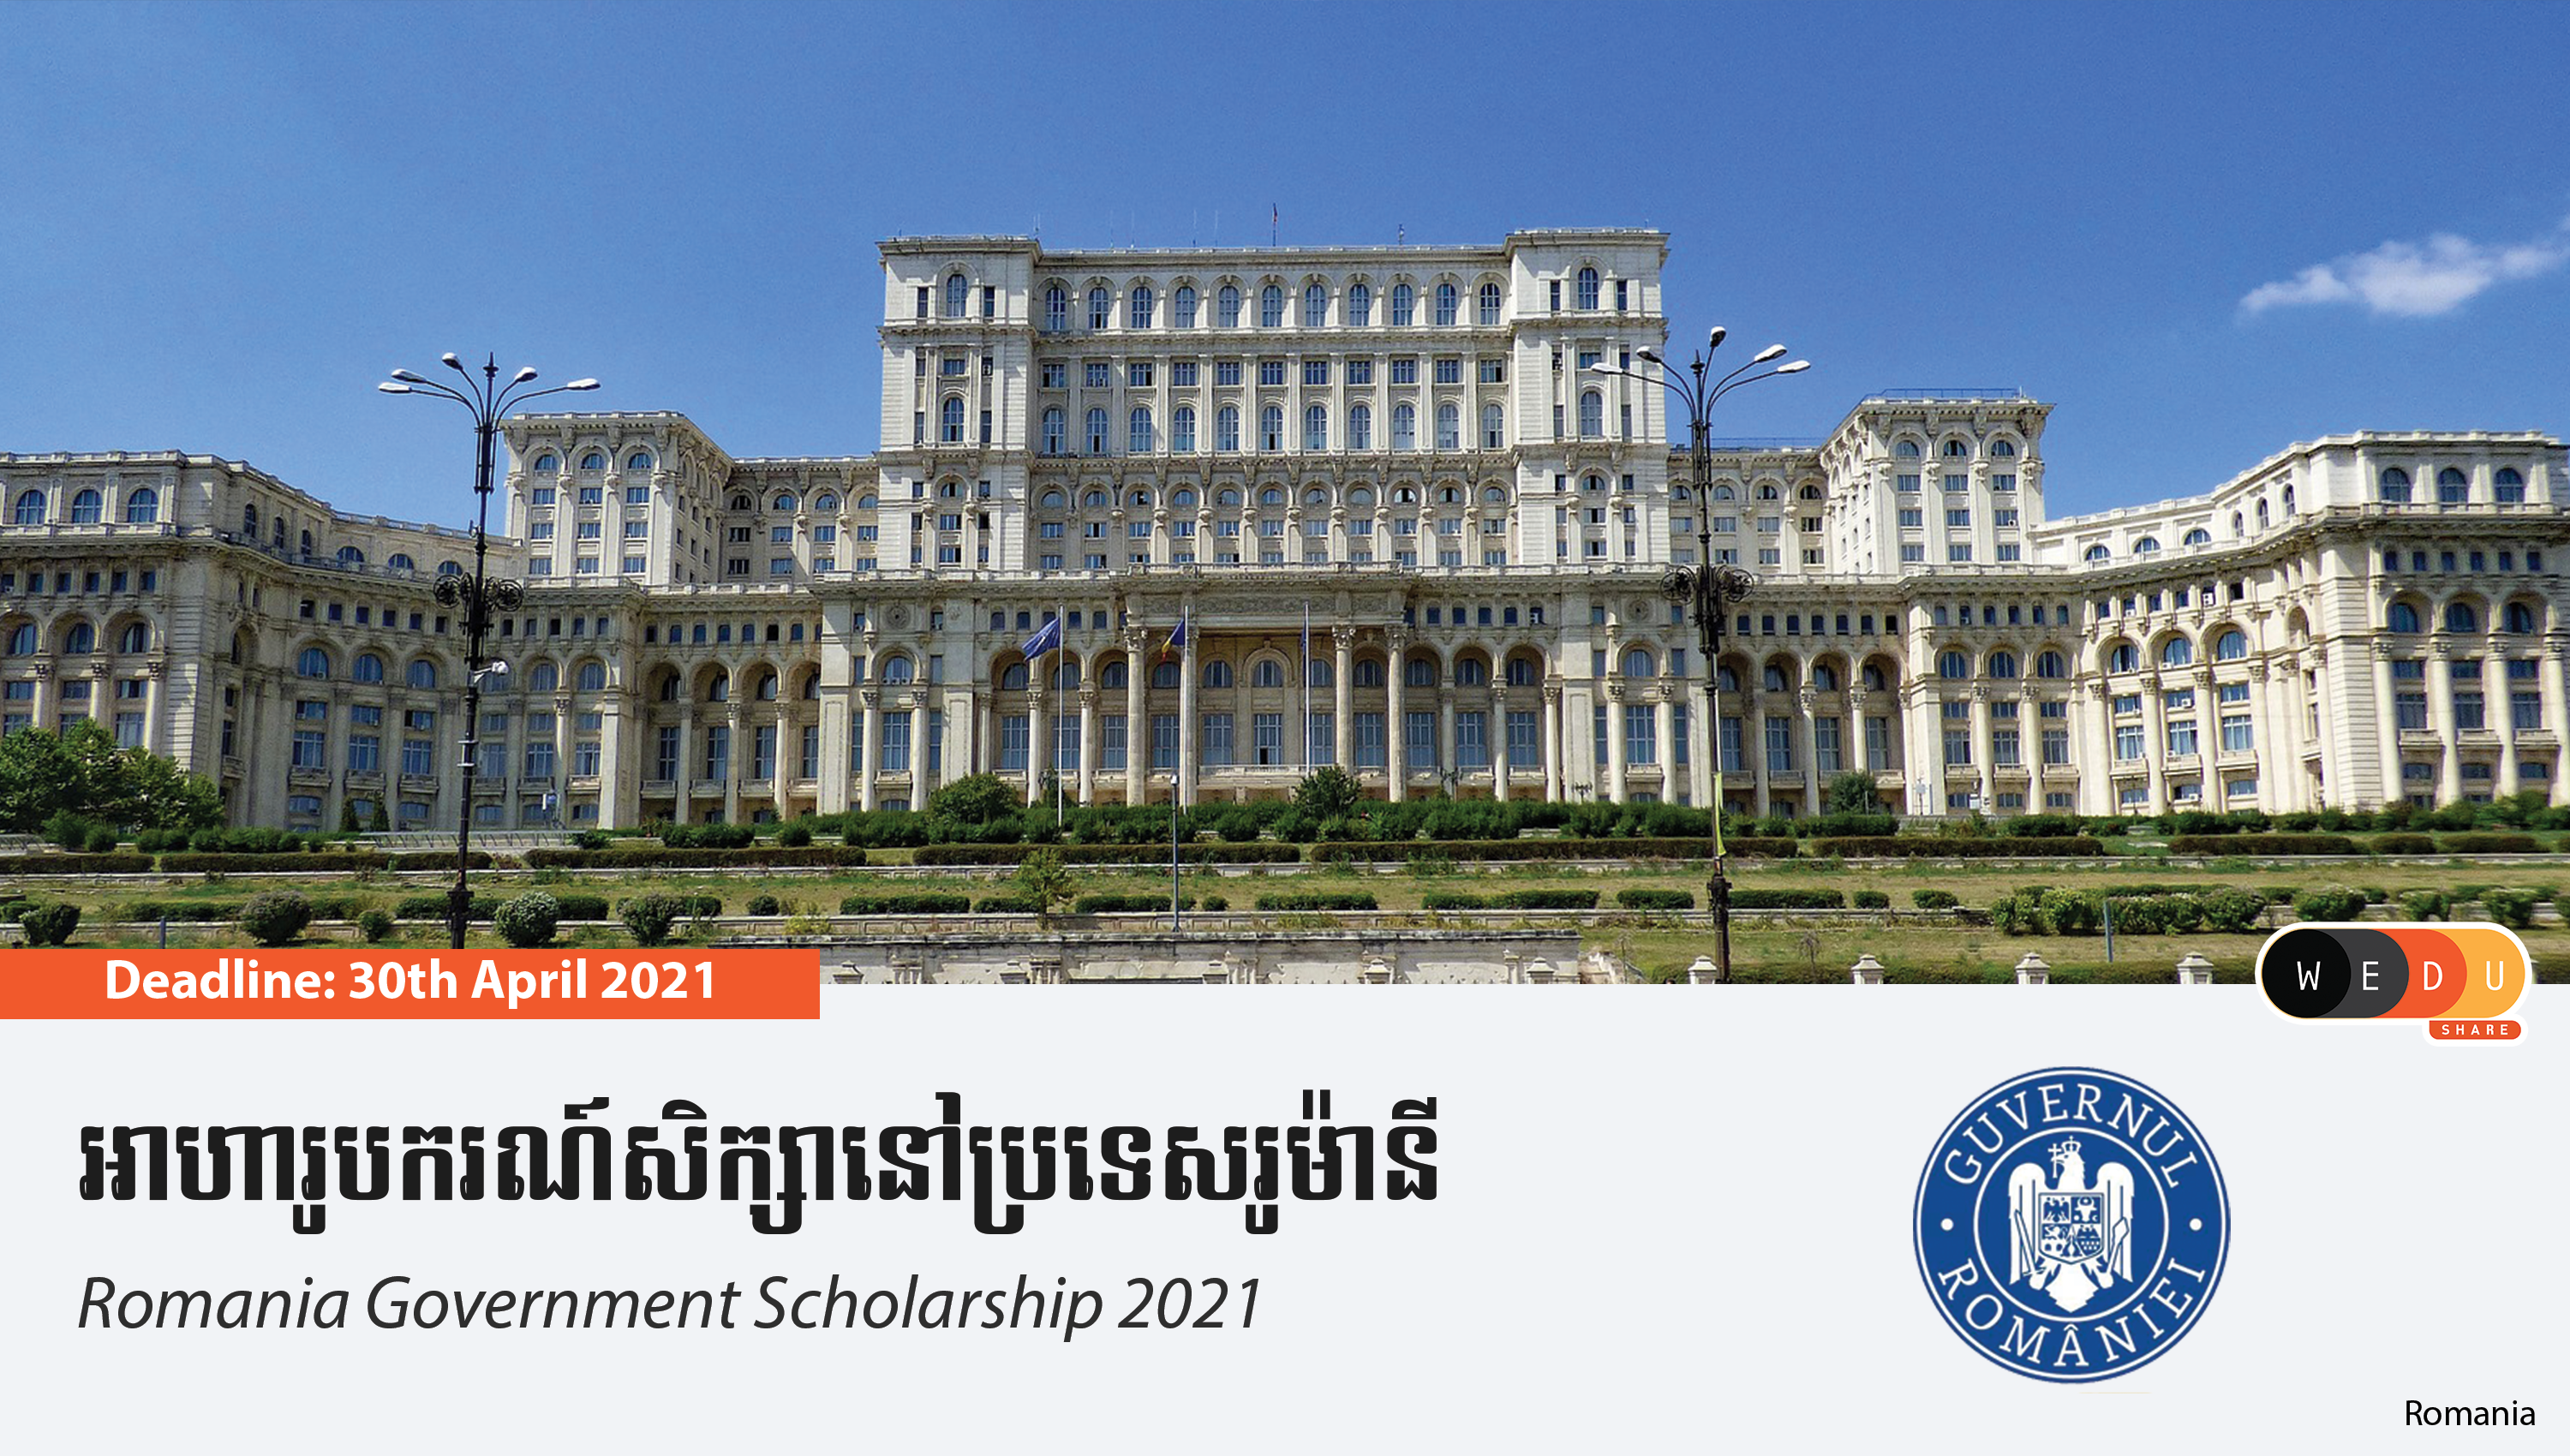 Romania Government Scholarship 2021